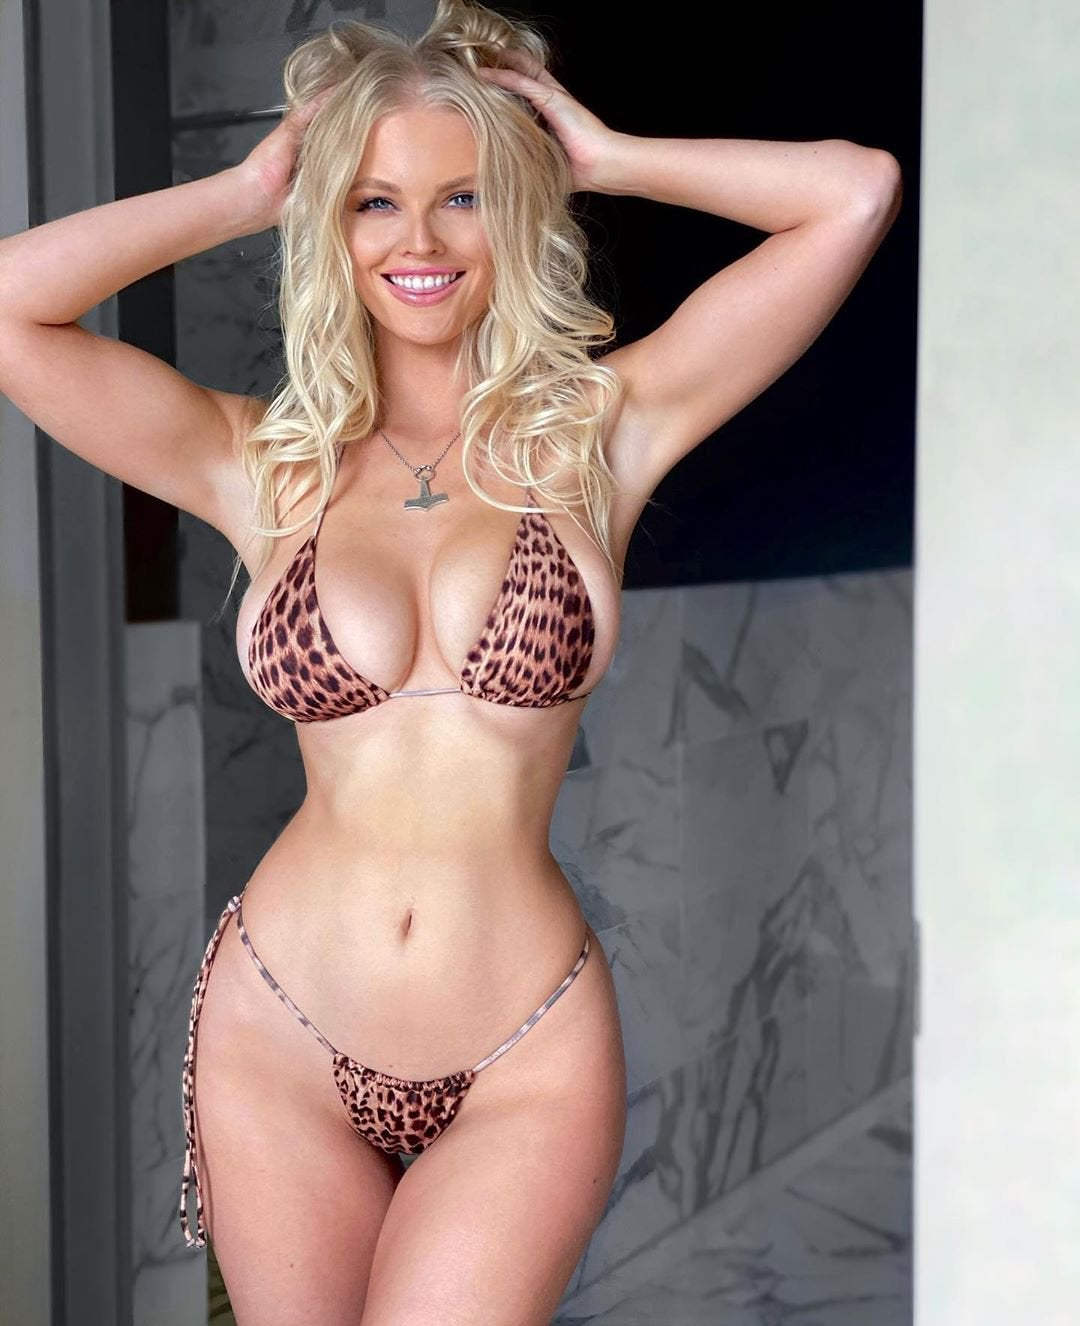 Zienna Sonne Williams Hot Tigerskin Bikini Pics - Zienna Sonne Williams Hot Tigerskin Bikini Pics